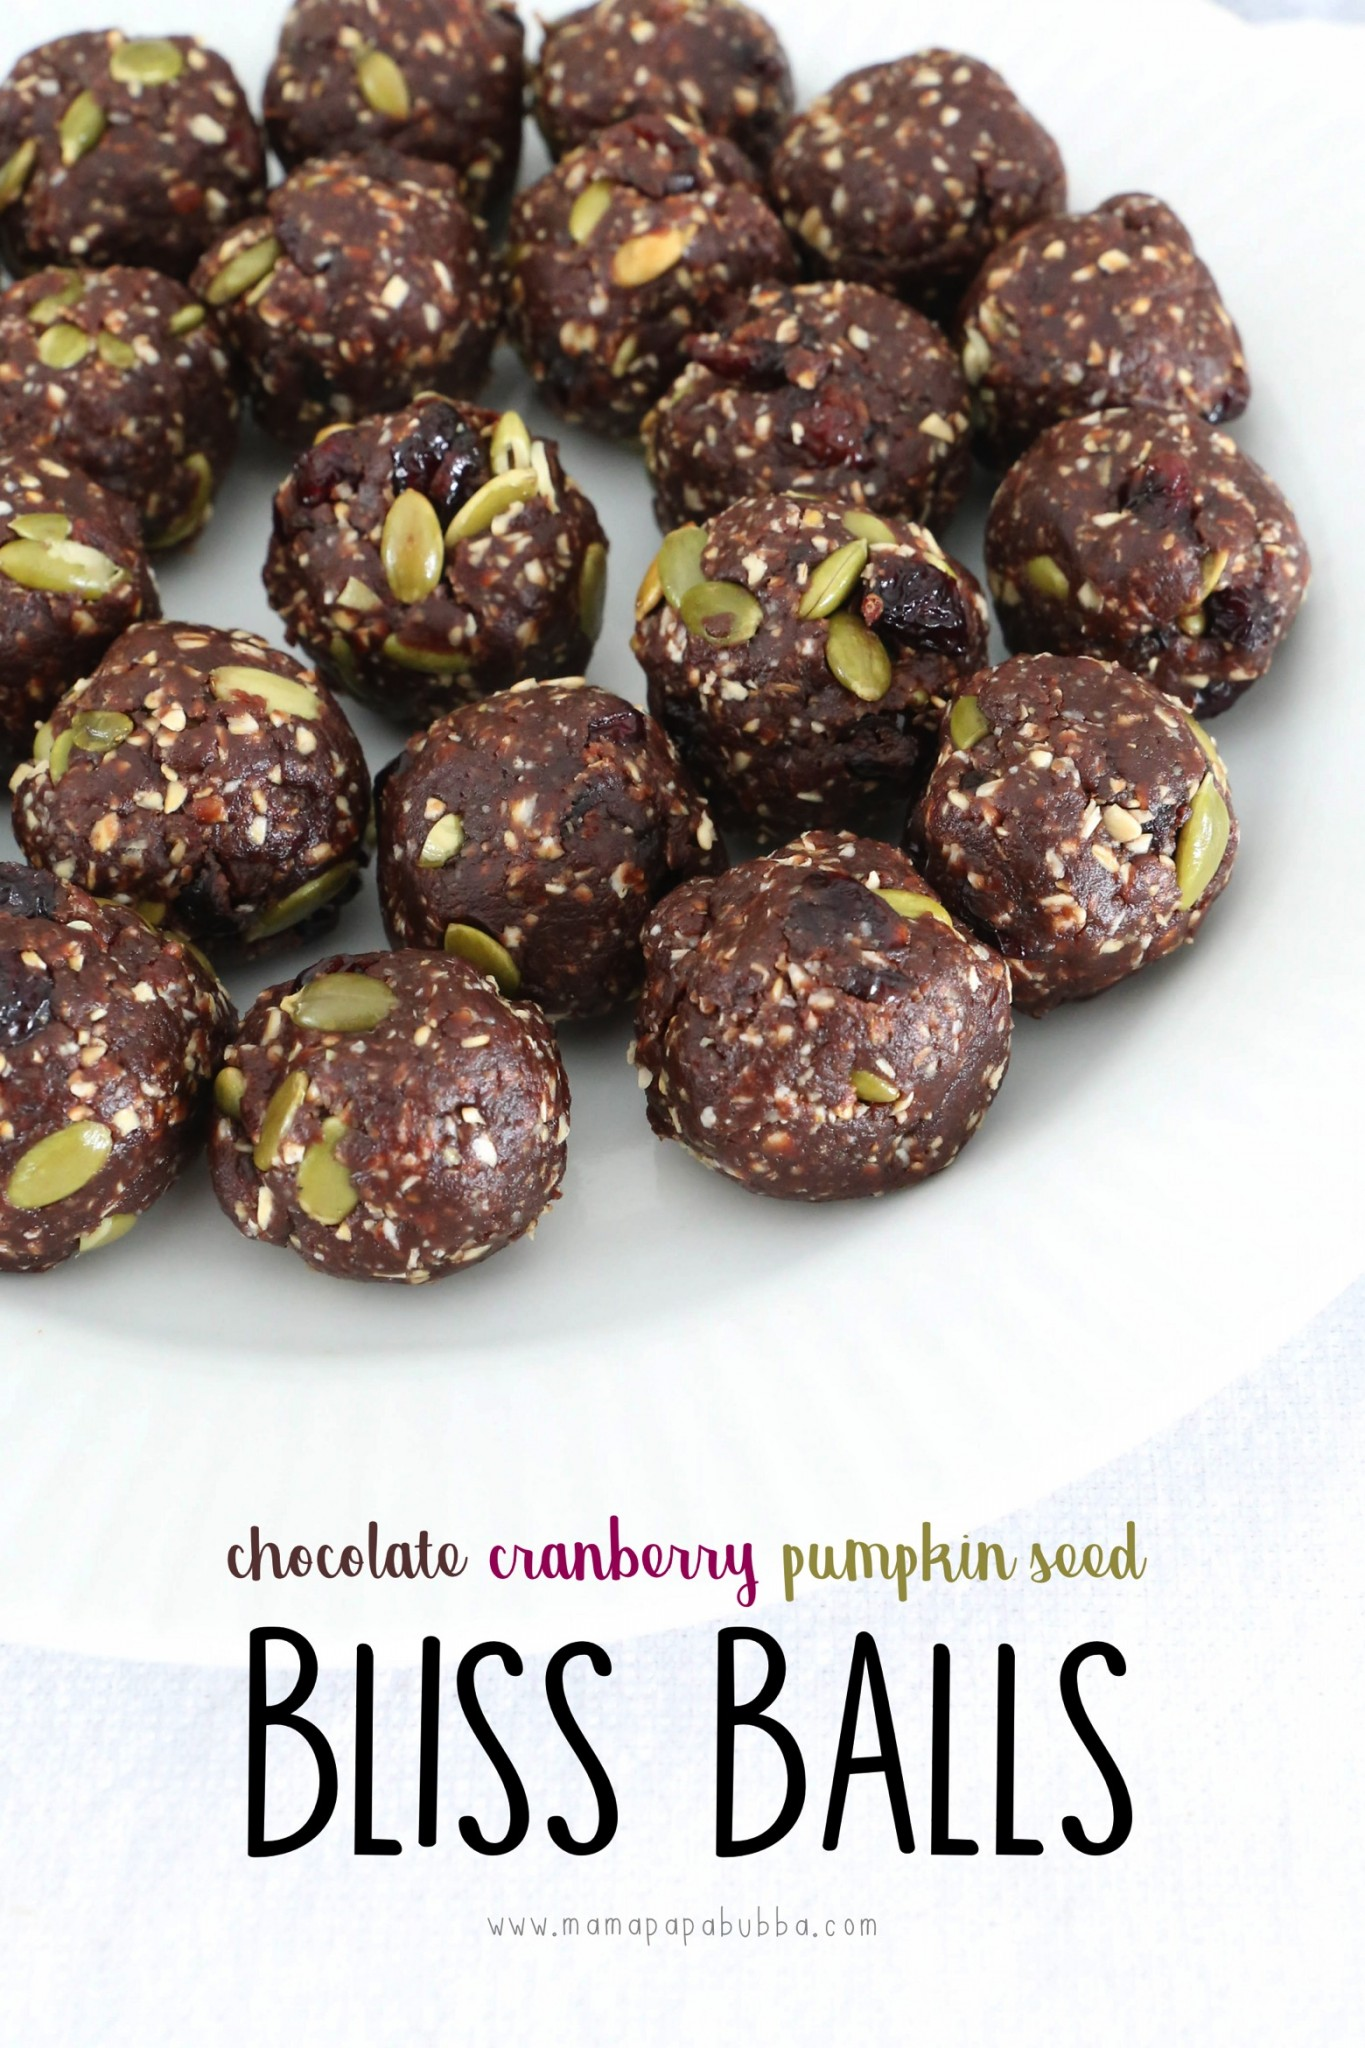 Chocolate Cranberrry Pumpkin Seed Bliss Balls | Mama Papa Bubba 2